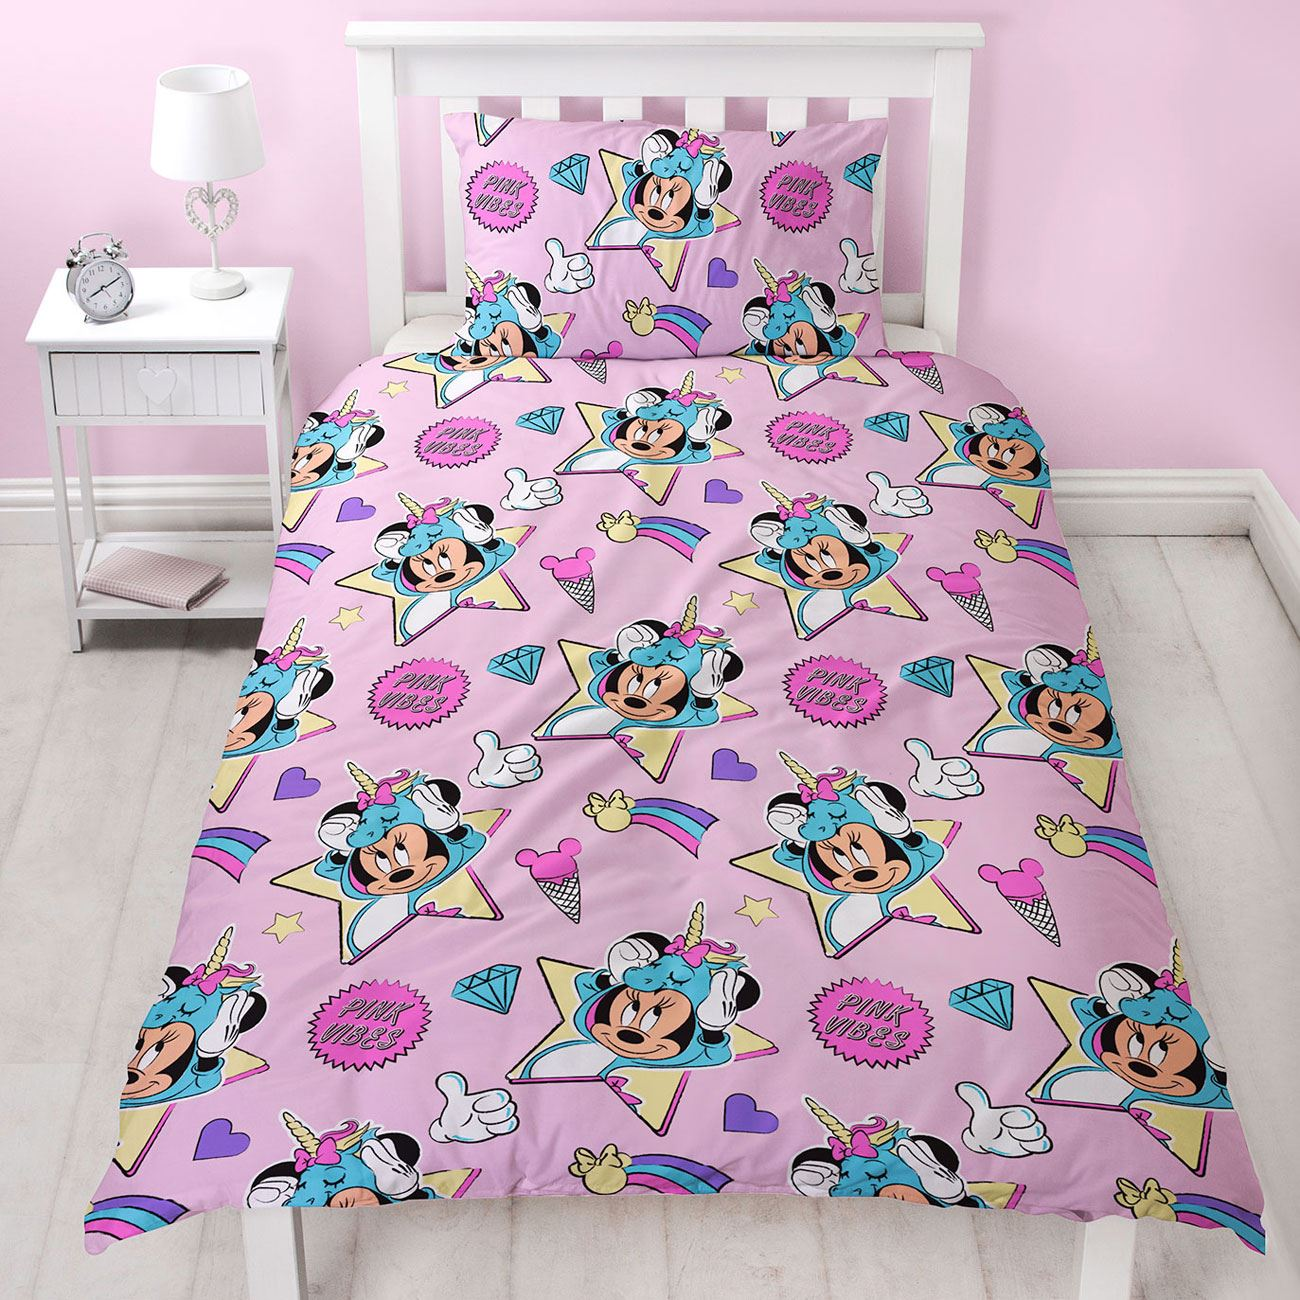 MINNIE-MOUSE-DUVET-COVERS-KIDS-GIRLS-BEDDING-SINGLE-DOUBLE-JUNIOR thumbnail 40